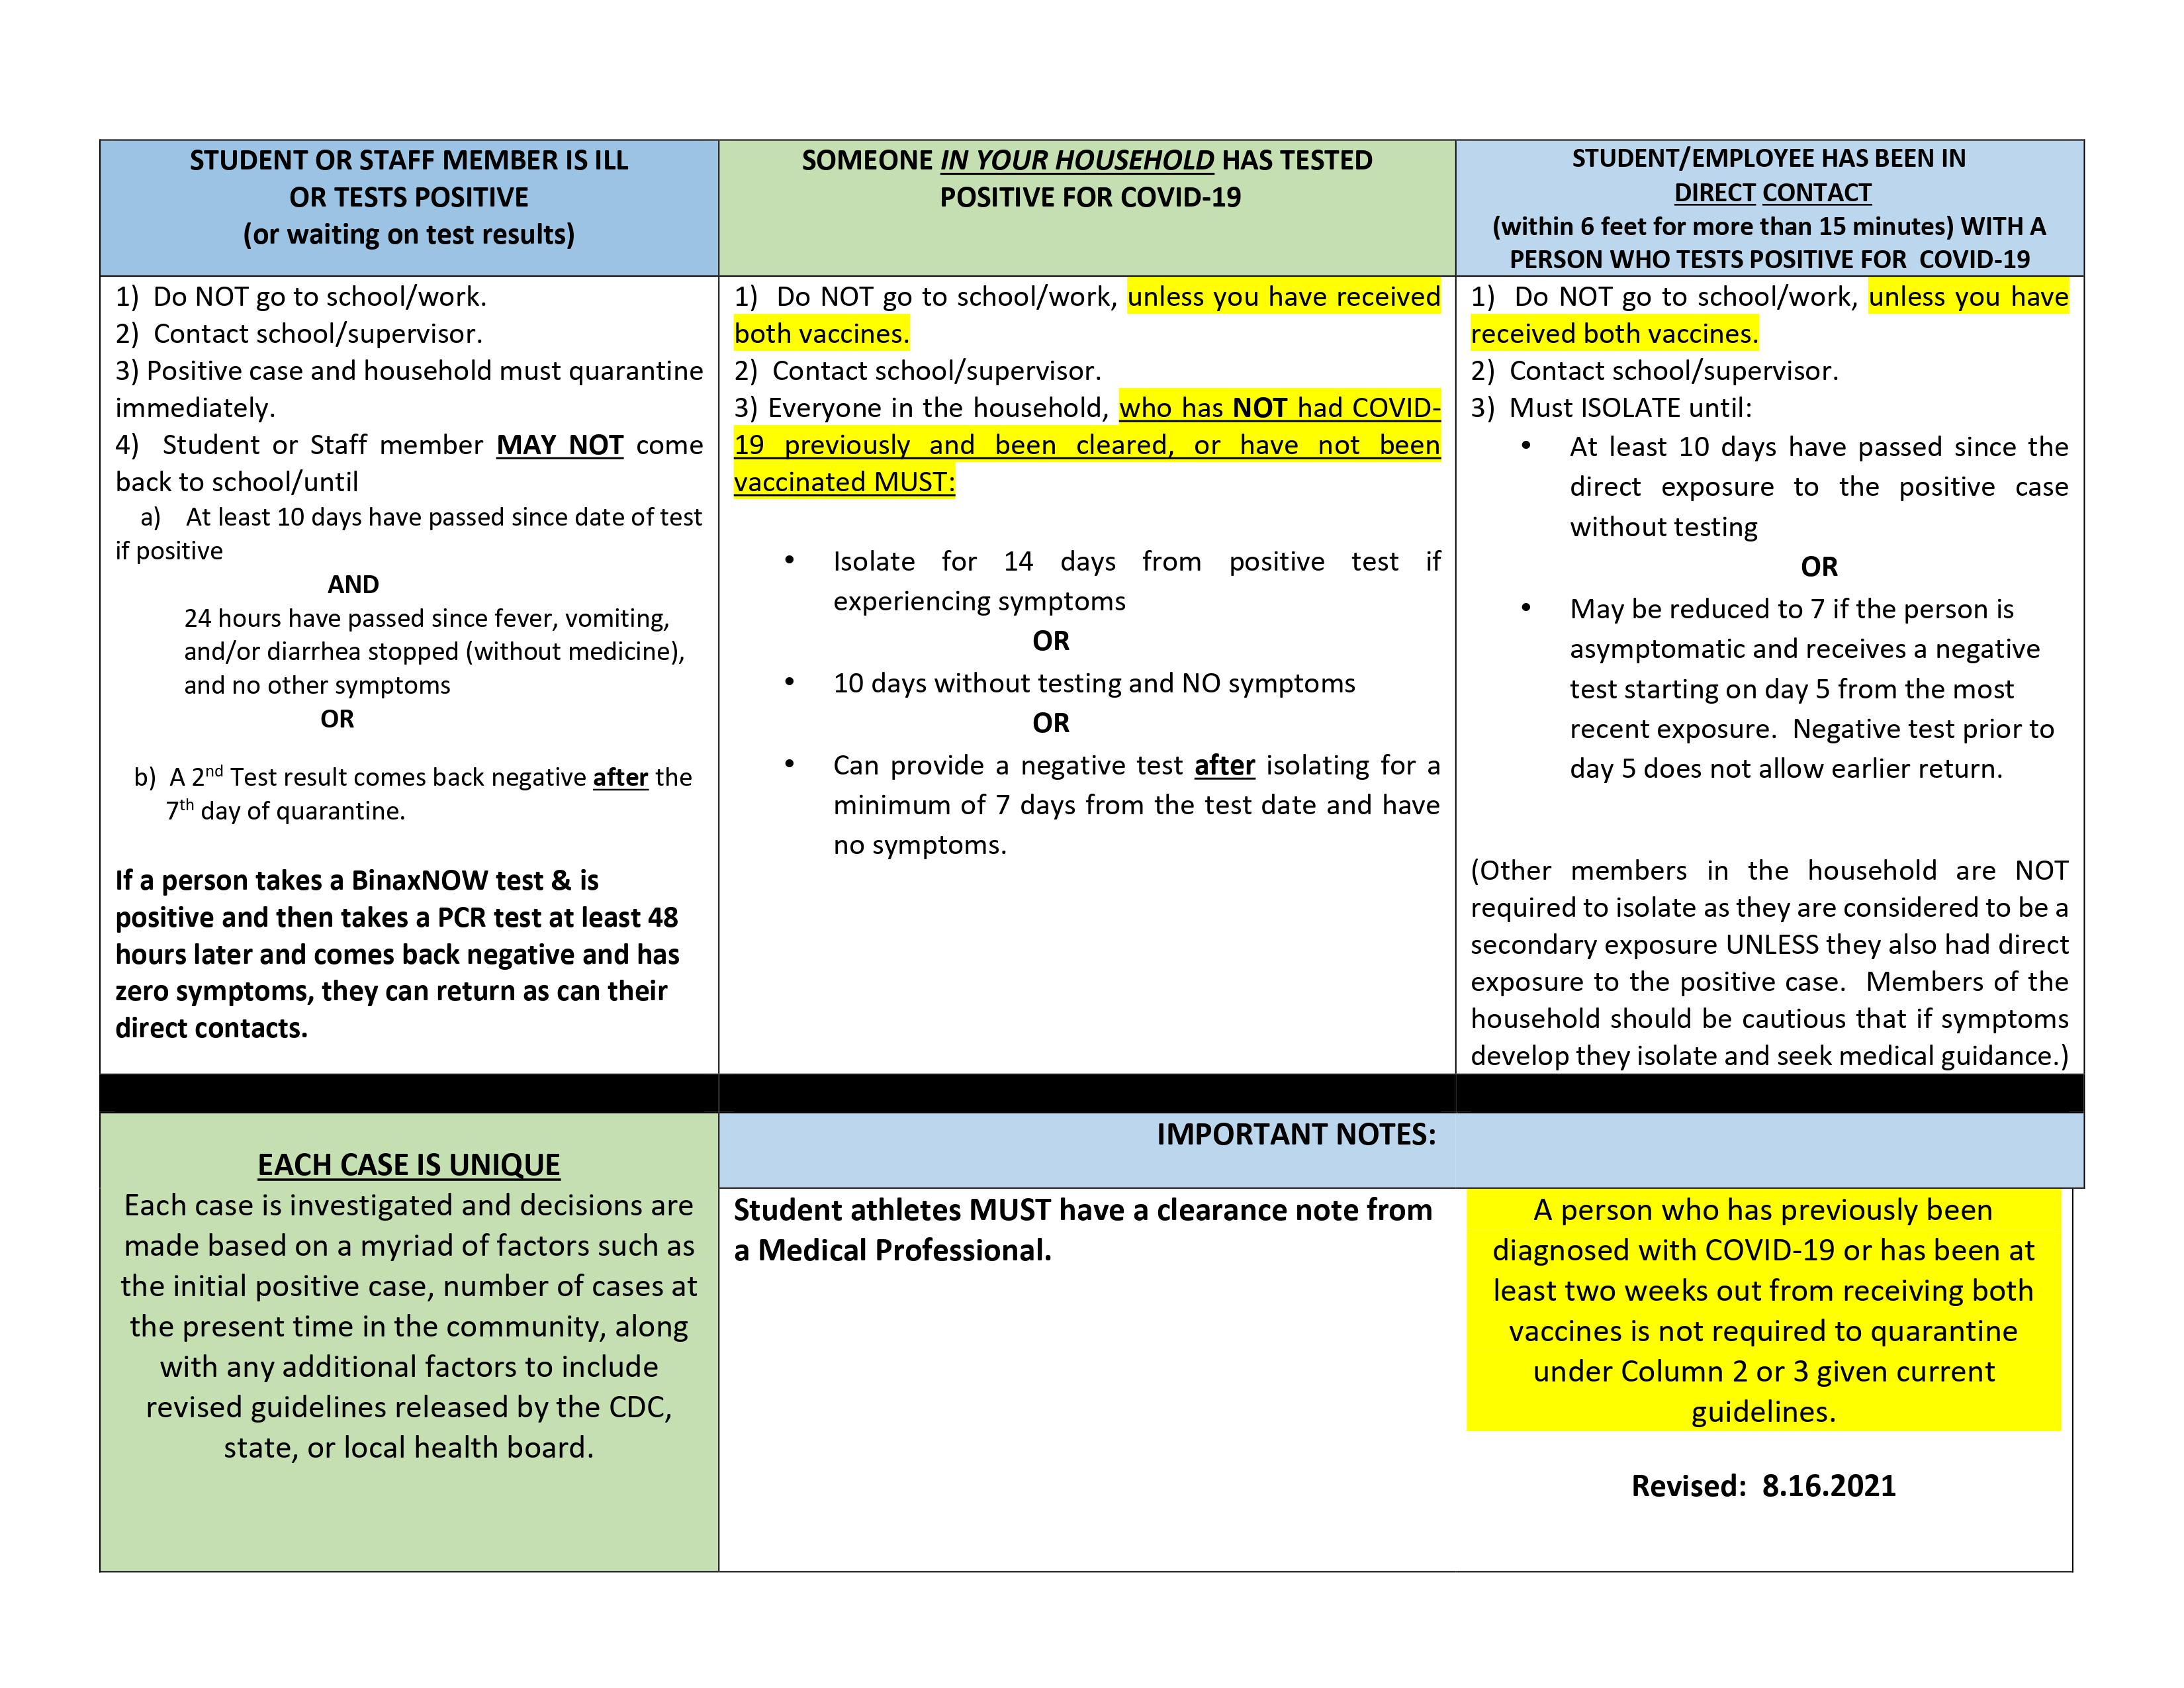 COVID-19 Daily Screening Tool and Exposure Guidelines